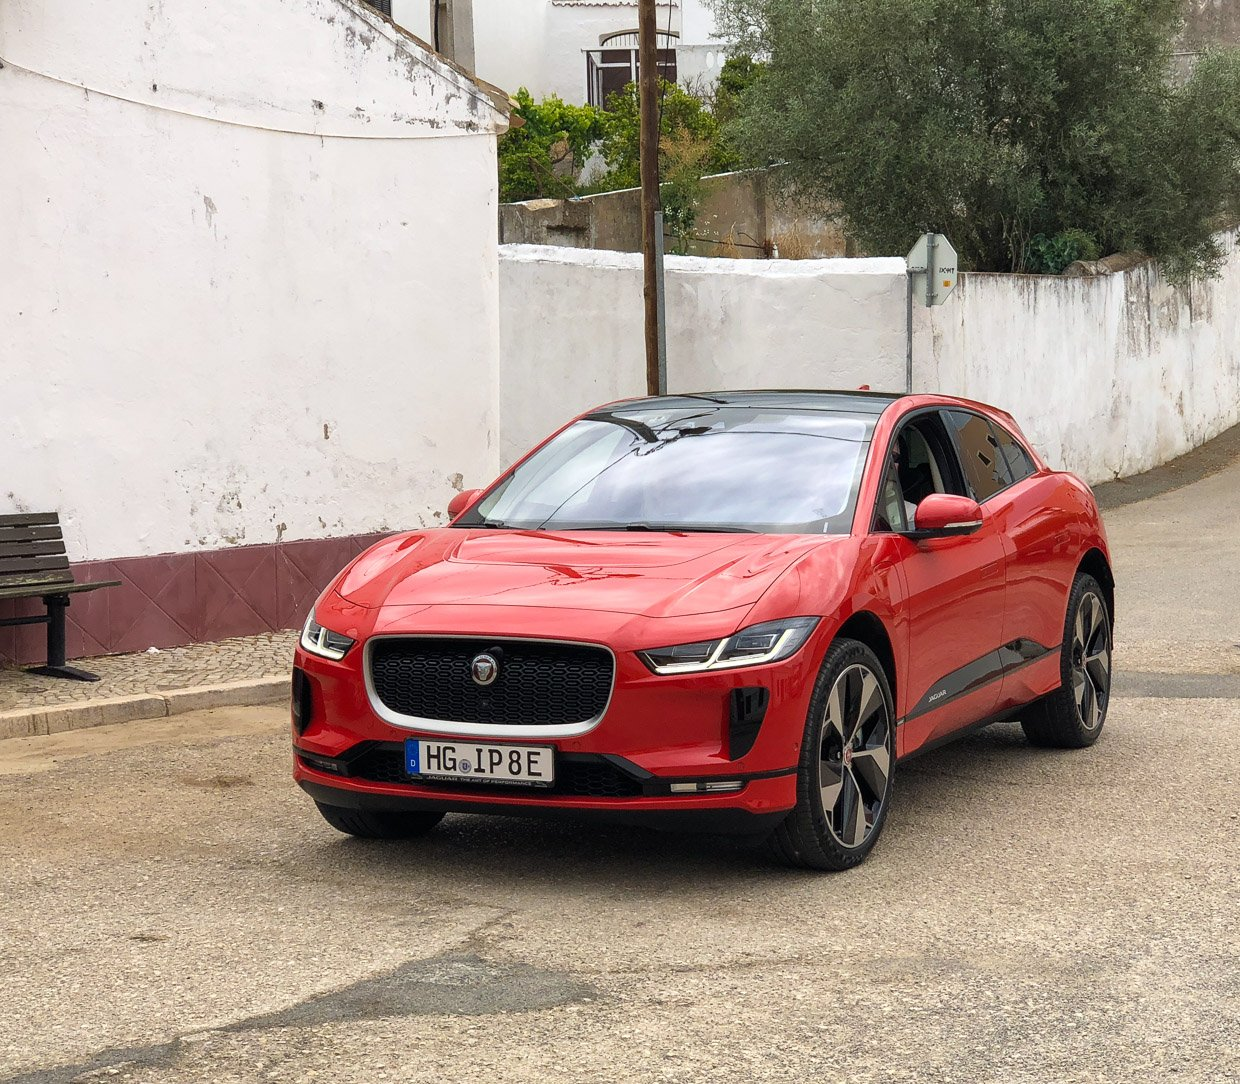 We Drove The 2019 Jaguar I-PACE, And It's A Game-changer